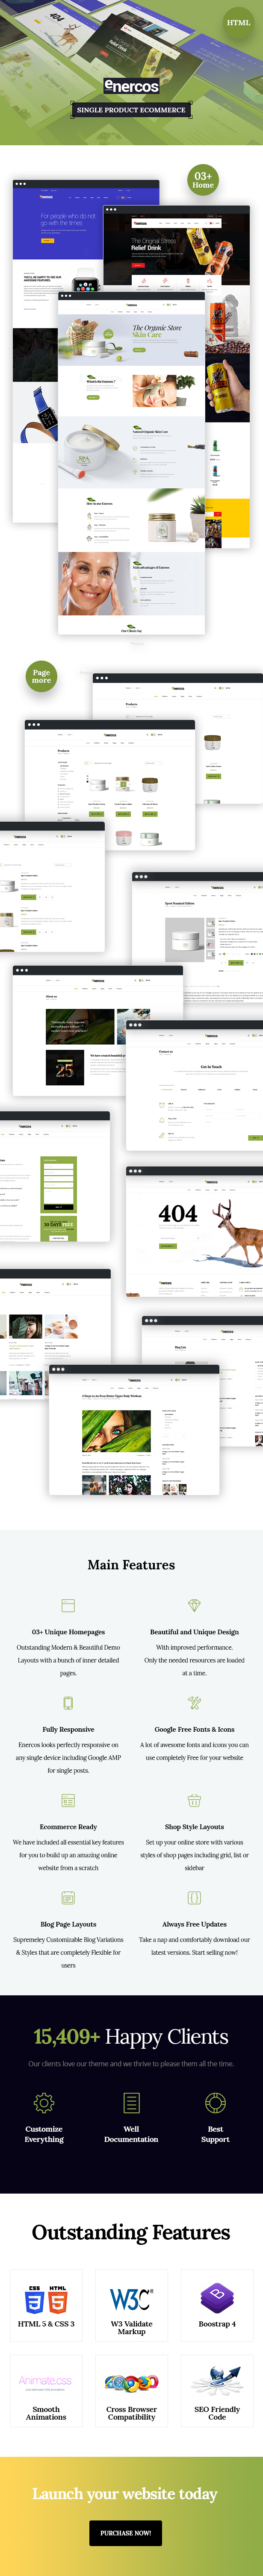 Enercos - Single Product eCommerce HTML5 Template - 1